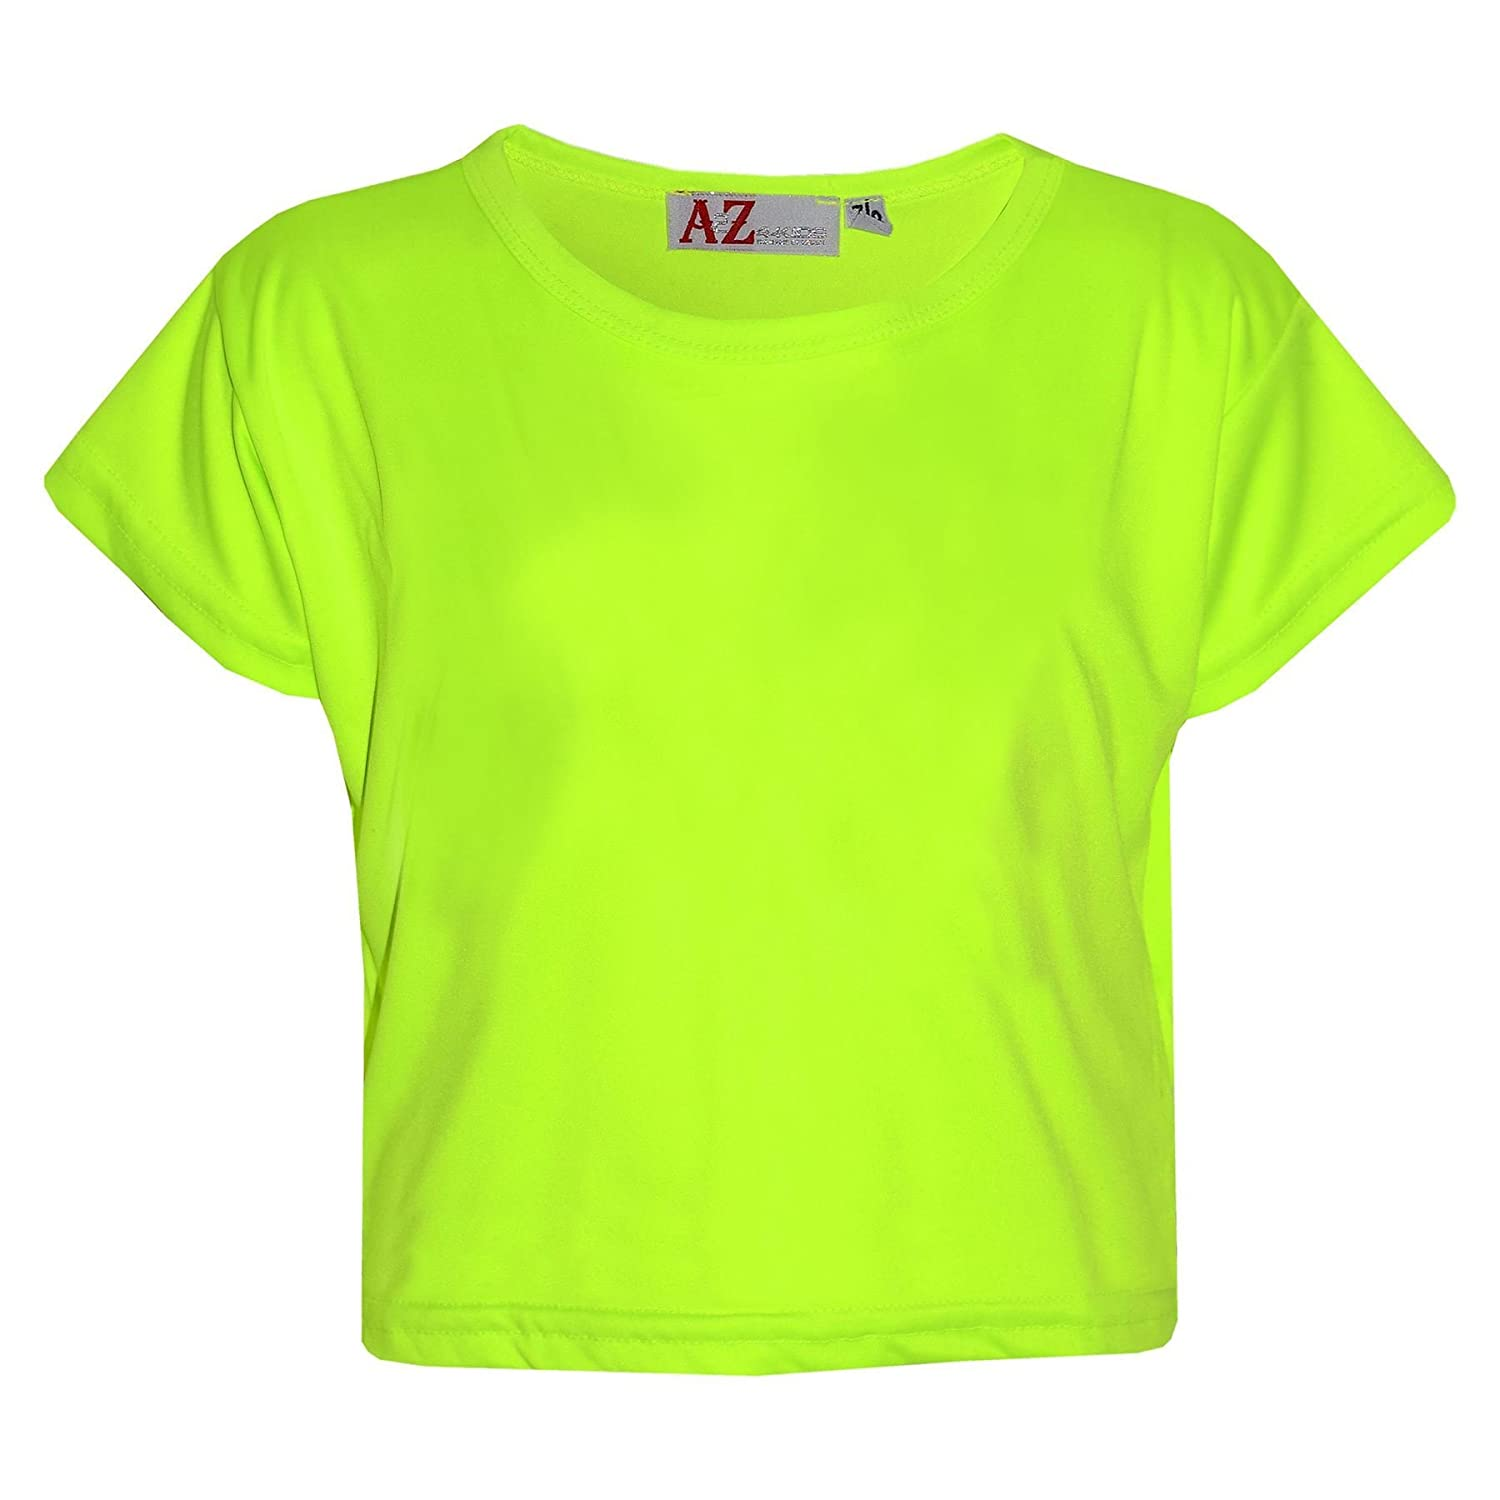 A2Z 4 Kids® Girls Top Kids Plain Color Stylish Fahsion Trendy T Shirt Crop Top New Age 5 6 7 8 9 10 11 12 13 Years